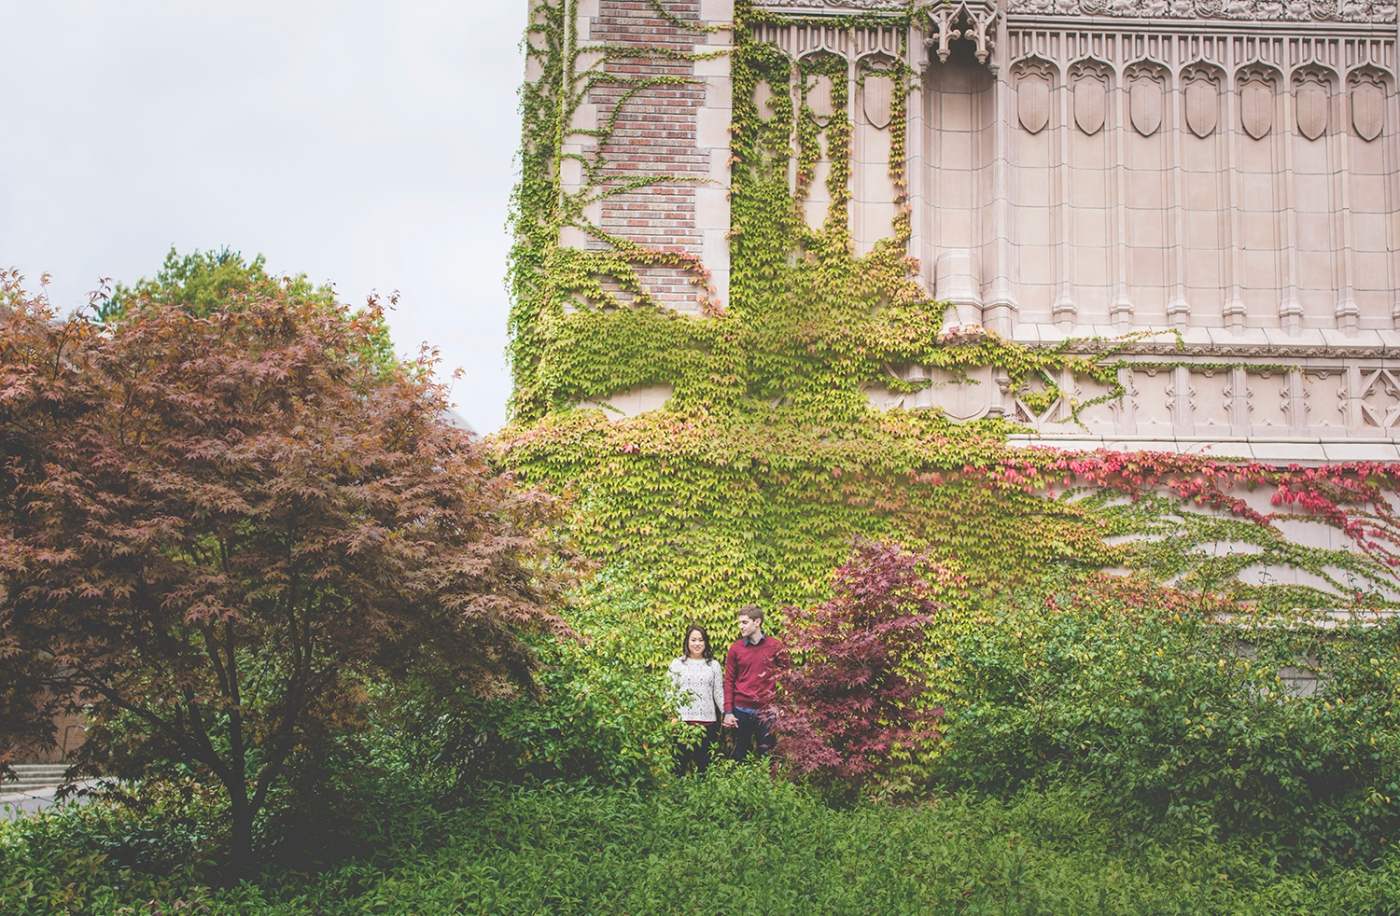 Engagement session at University of Washington by Jane Speleers DSC_5605